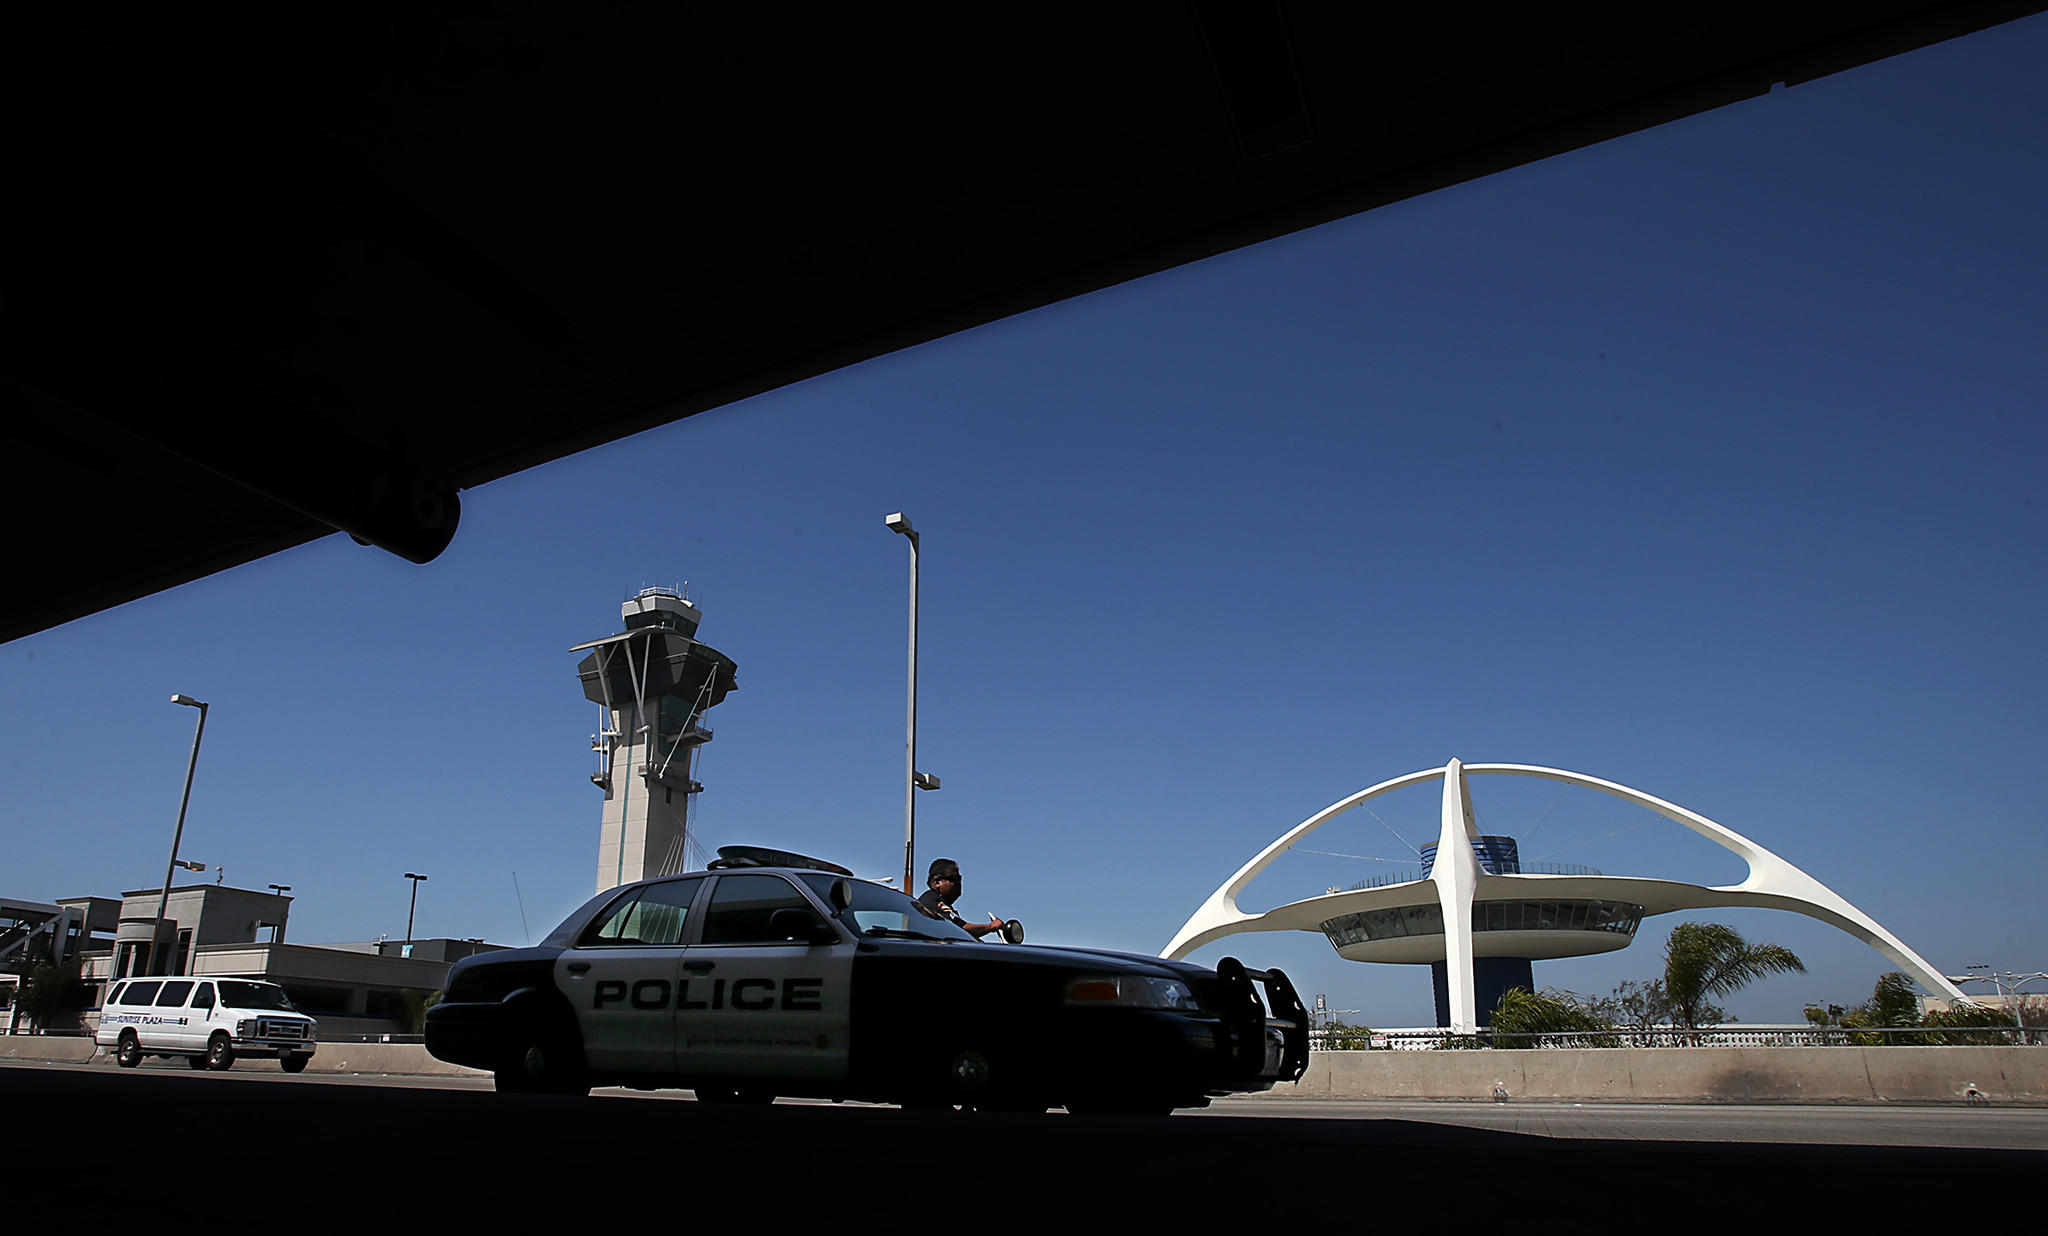 An electric toothbrush discovered by LAX baggage handlers prompted a minor bomb scare Wednesday at Terminal 2.